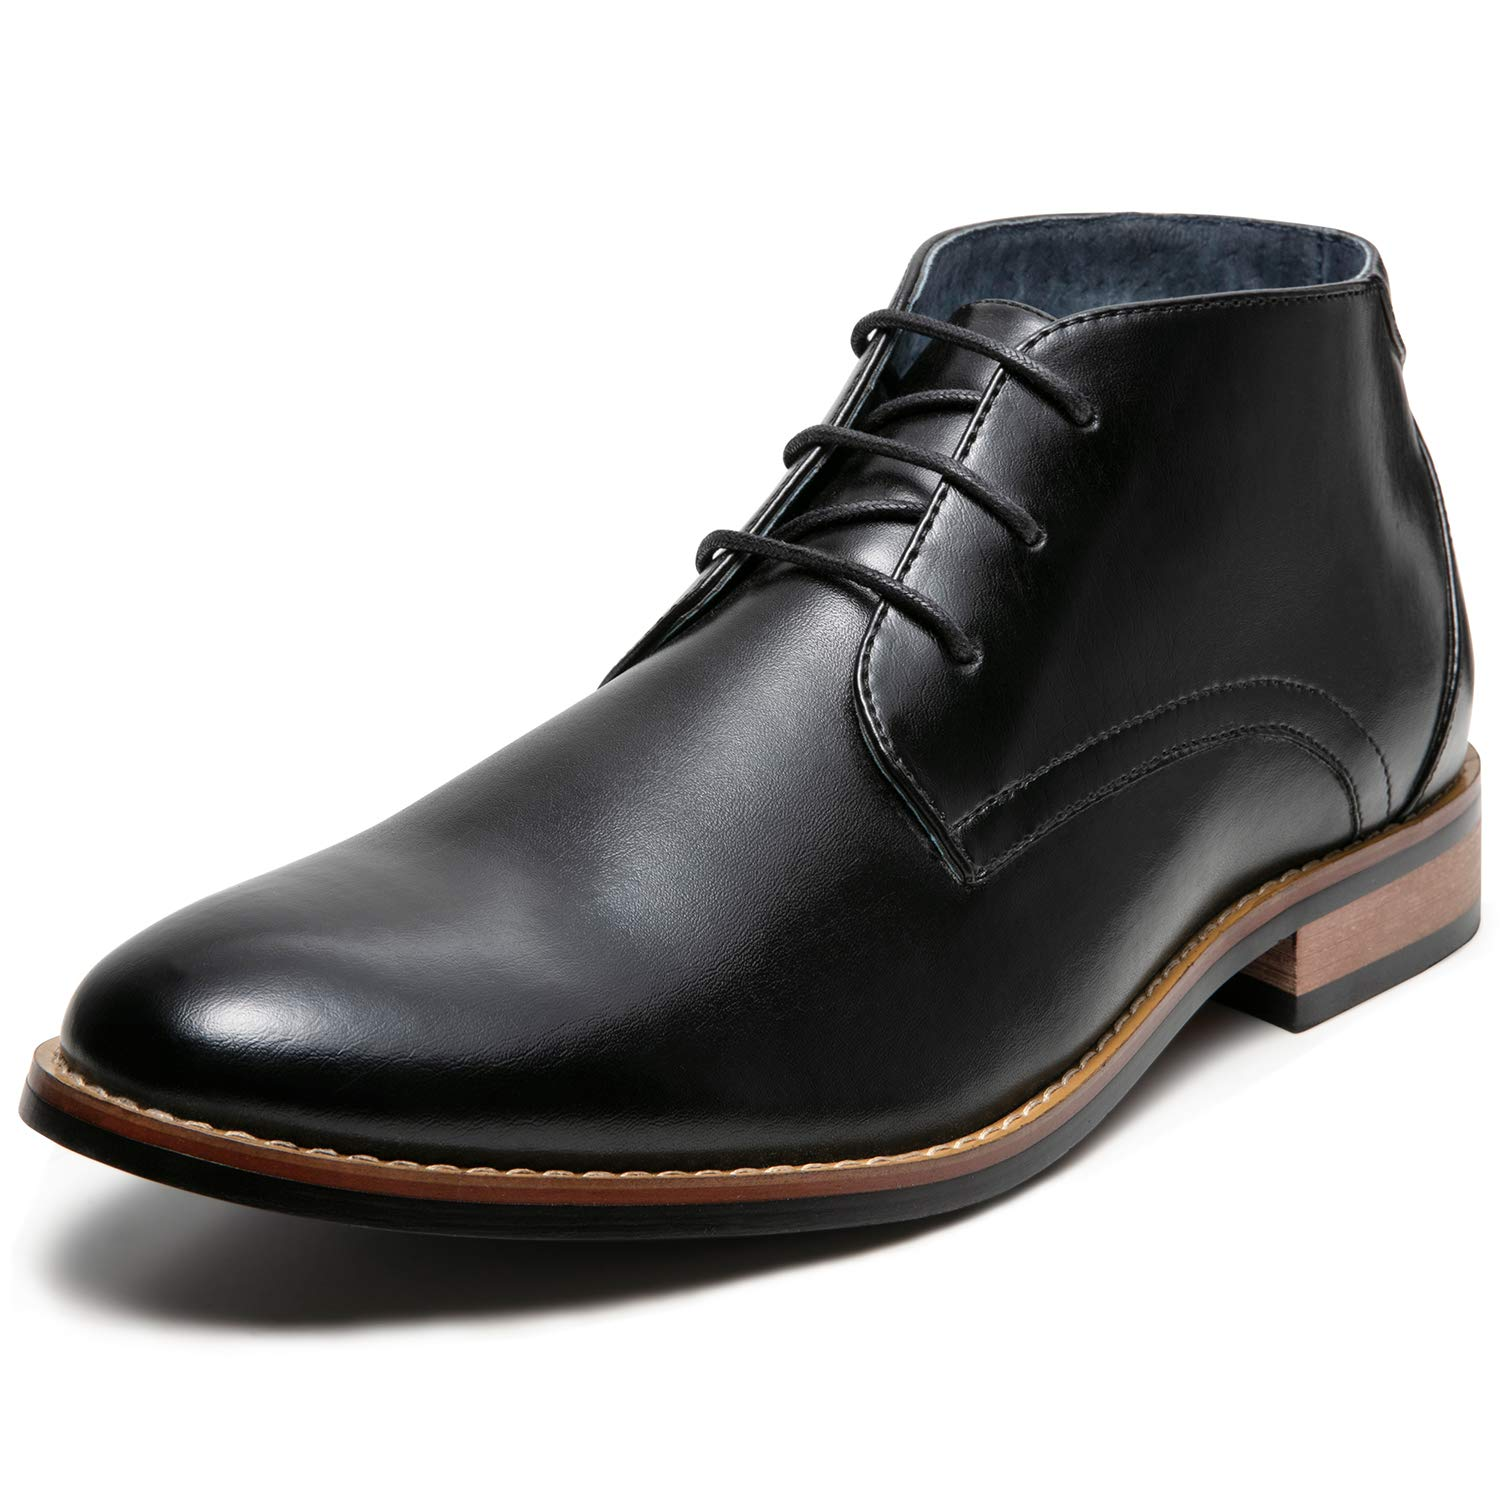 Mens Vintage Shoes, Boots | Retro Shoes & Boots ZRIANG Mens Oxford Dress Leather Lined Round Toe Angle Boots $25.99 AT vintagedancer.com